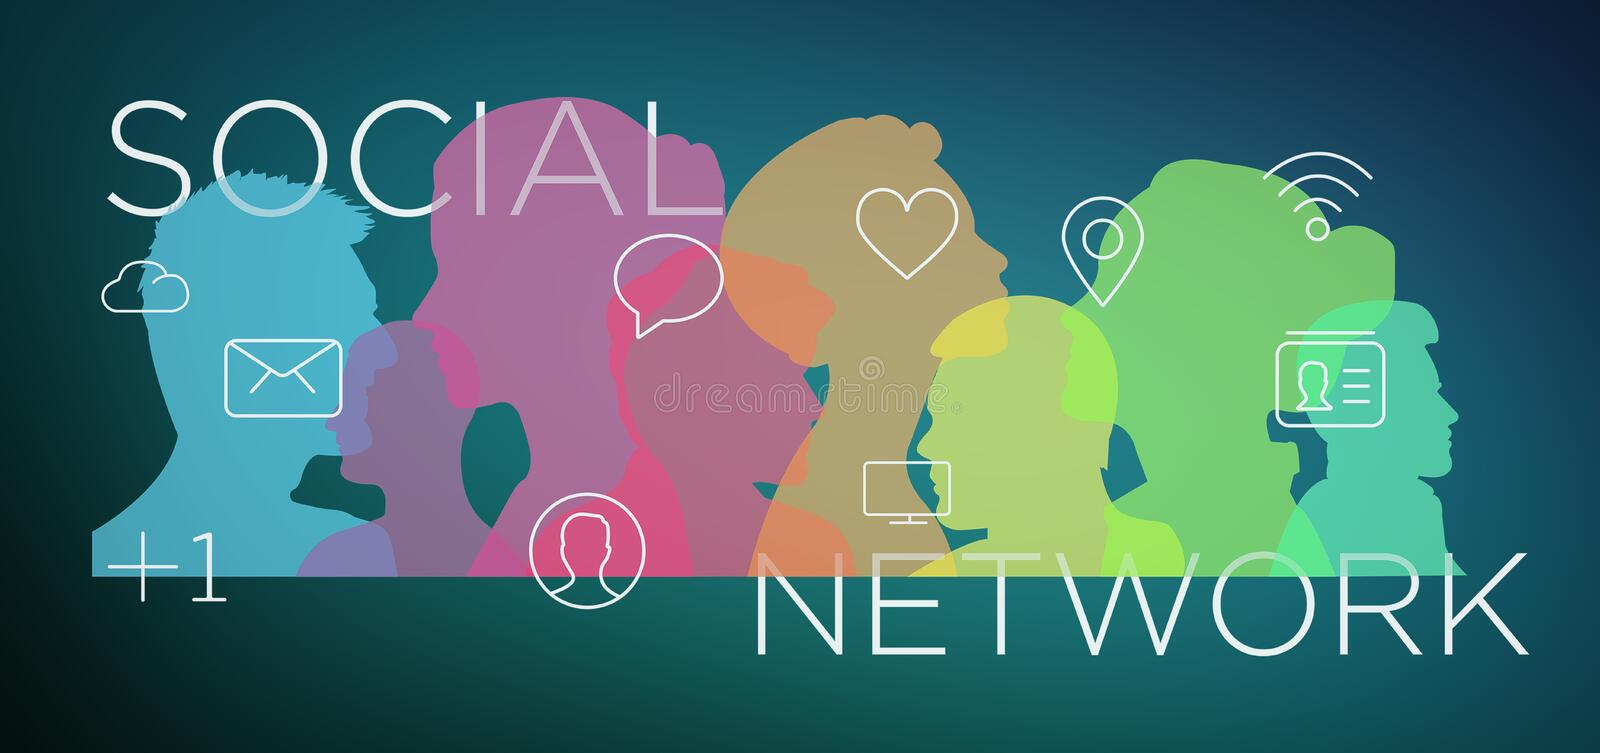 Colorfull social network teamwork with icon 3d rendering vector illustration